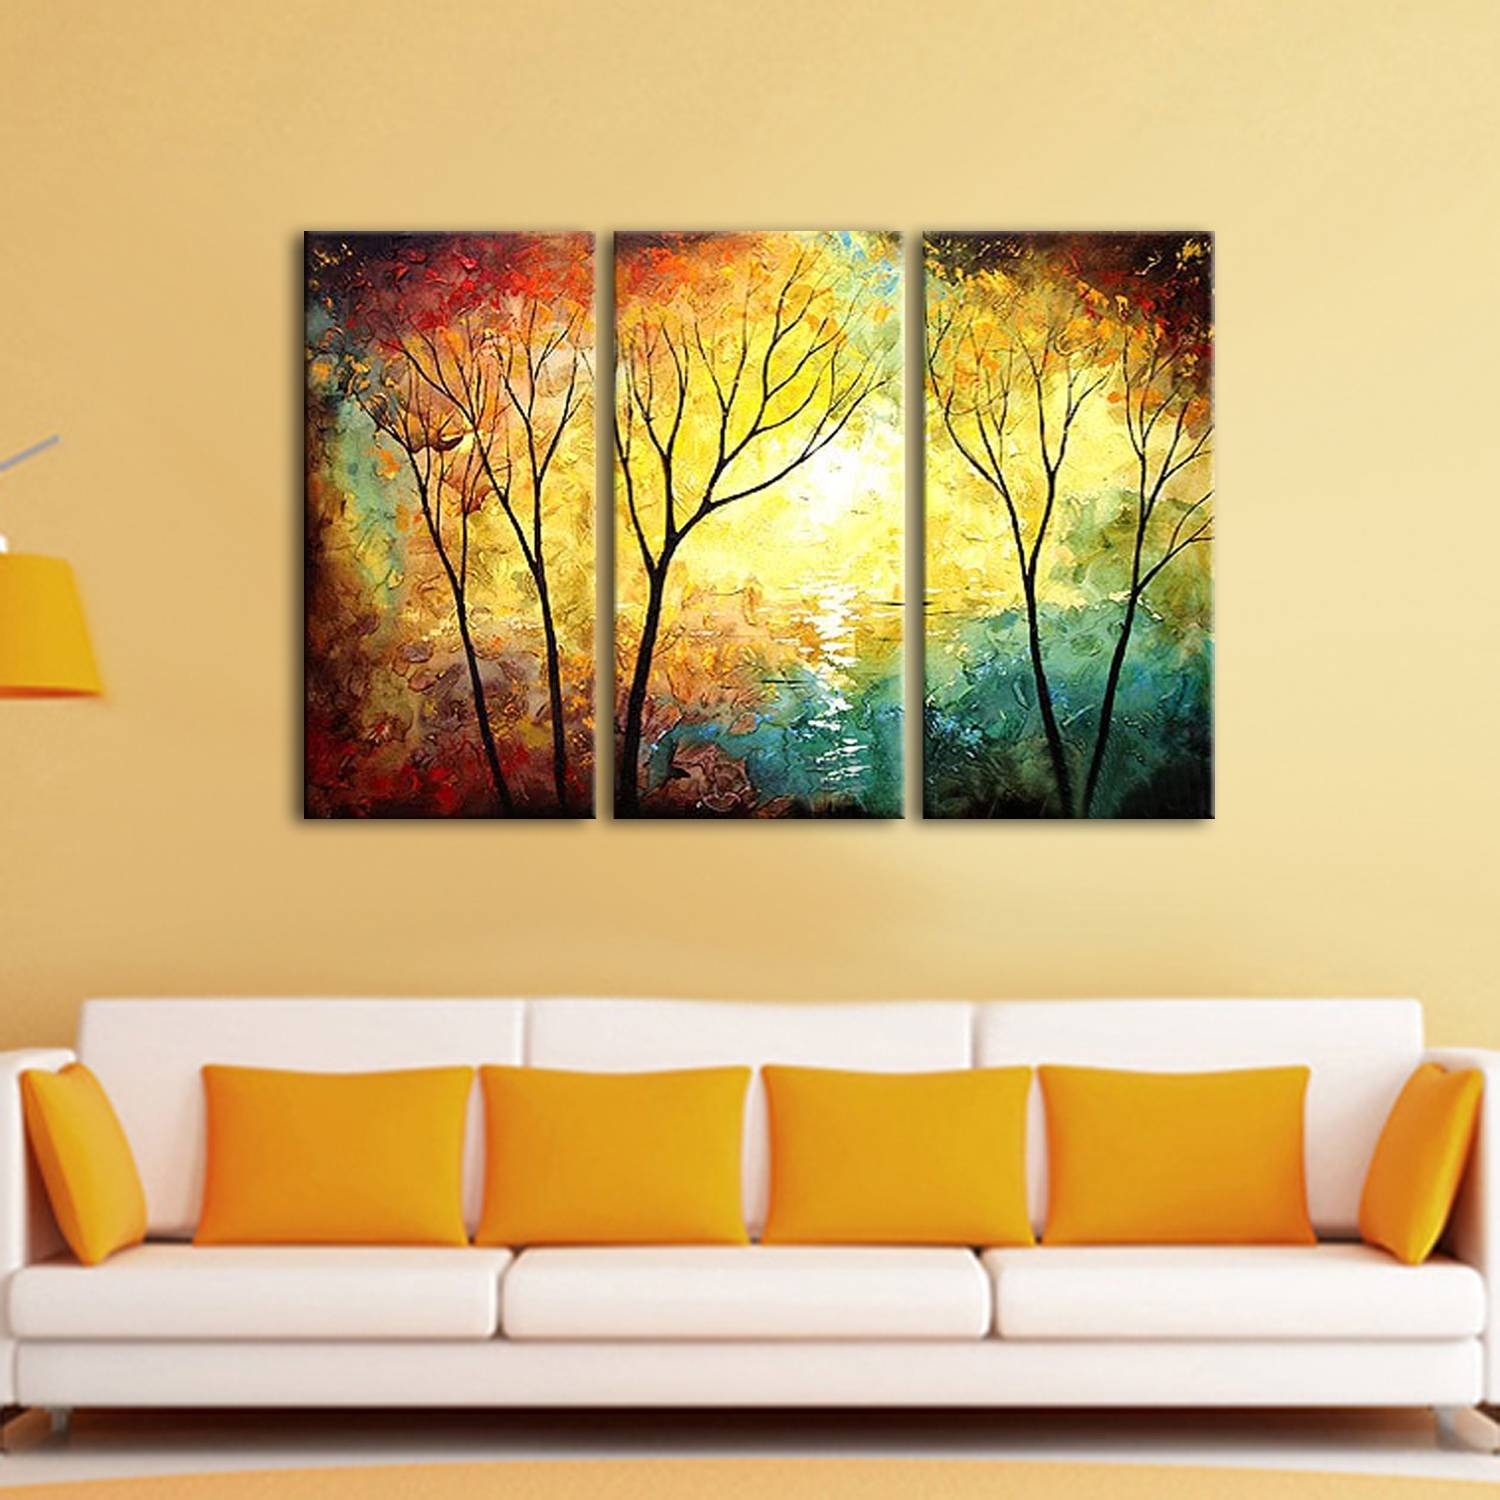 3 Panel Set Wall Art Painting, Yellow Red Tree Oil Painting,oil Inside Most Current Red And Yellow Wall Art (View 1 of 20)